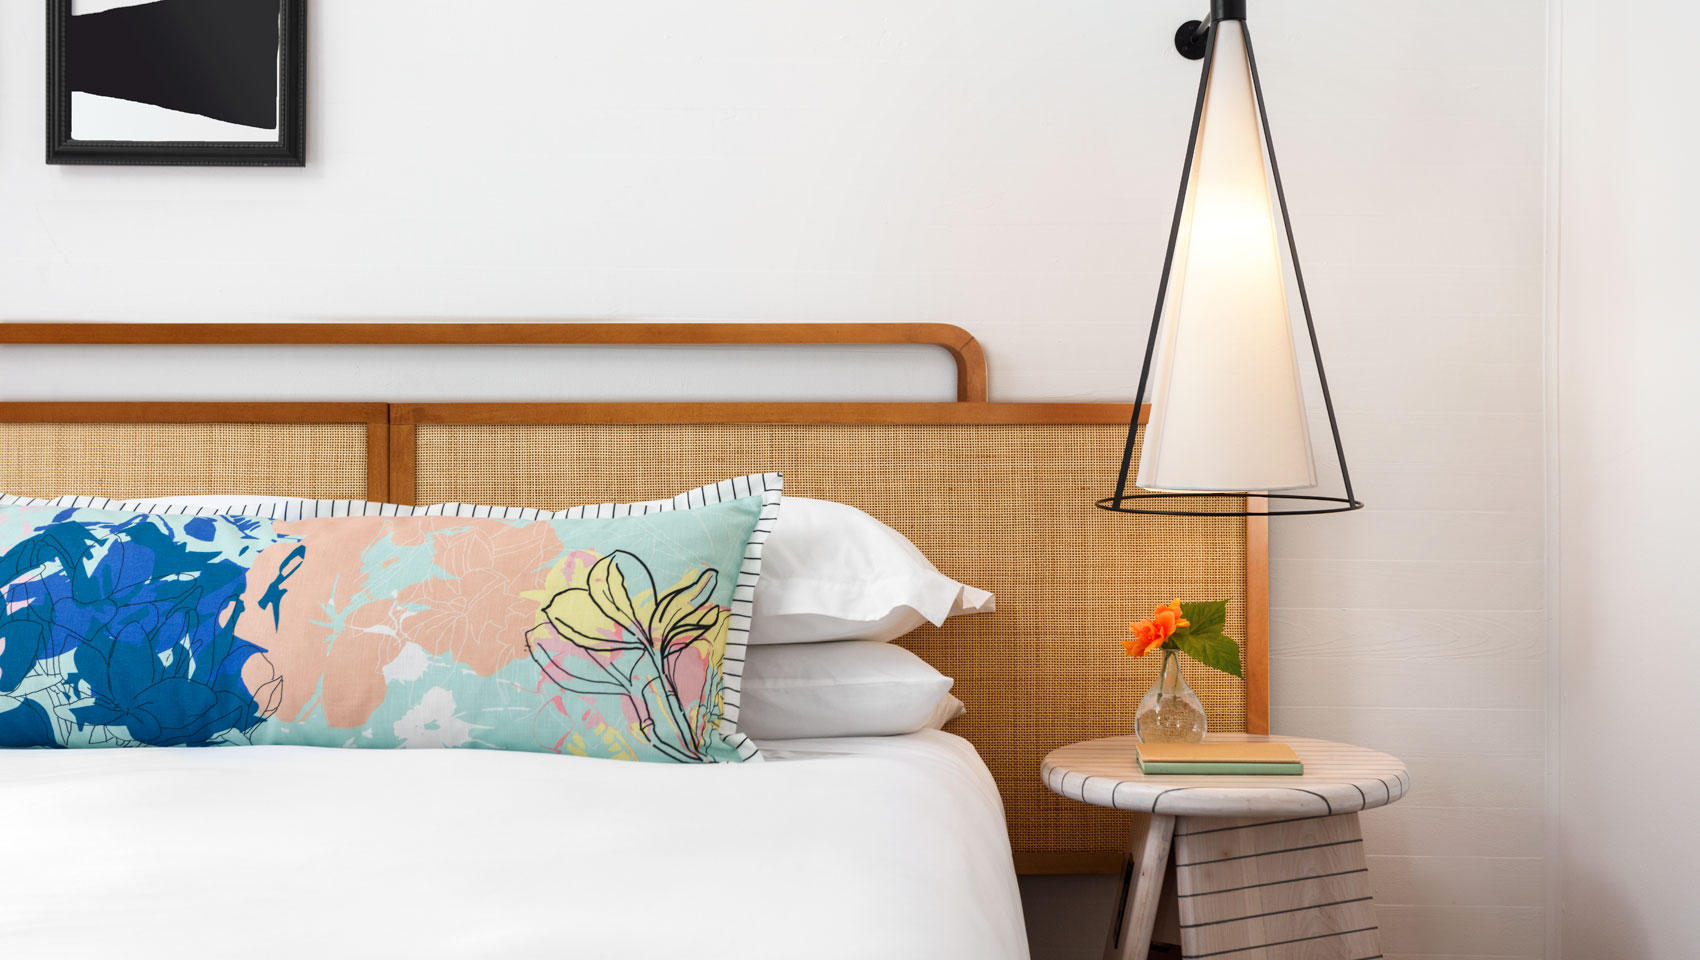 close up of king bed with orange flowers on the bedside table and modern lighting.